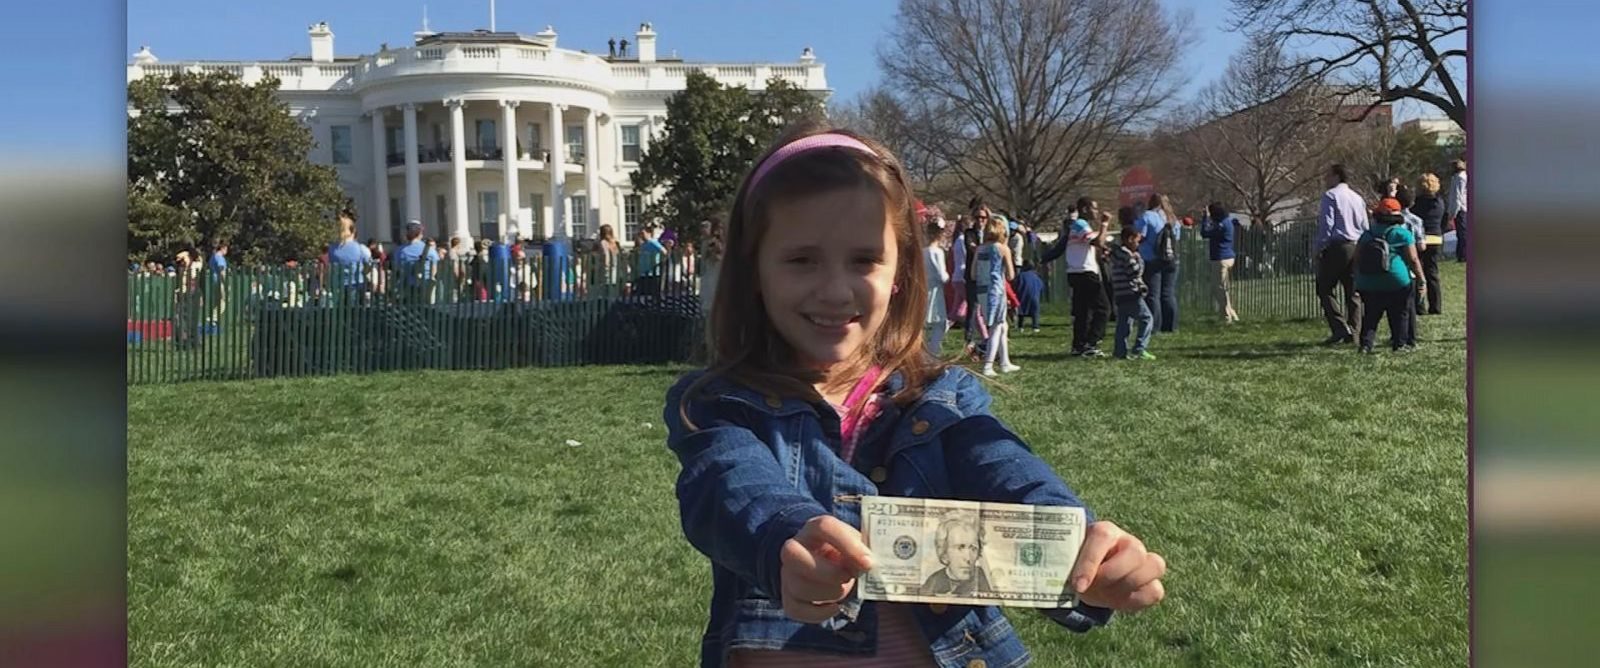 PHOTO: A young girl from Cambridge, Mass. wrote to President Obama two years ago asking for a woman to be put on American paper currency, and on her 11th birthday her wish came true.